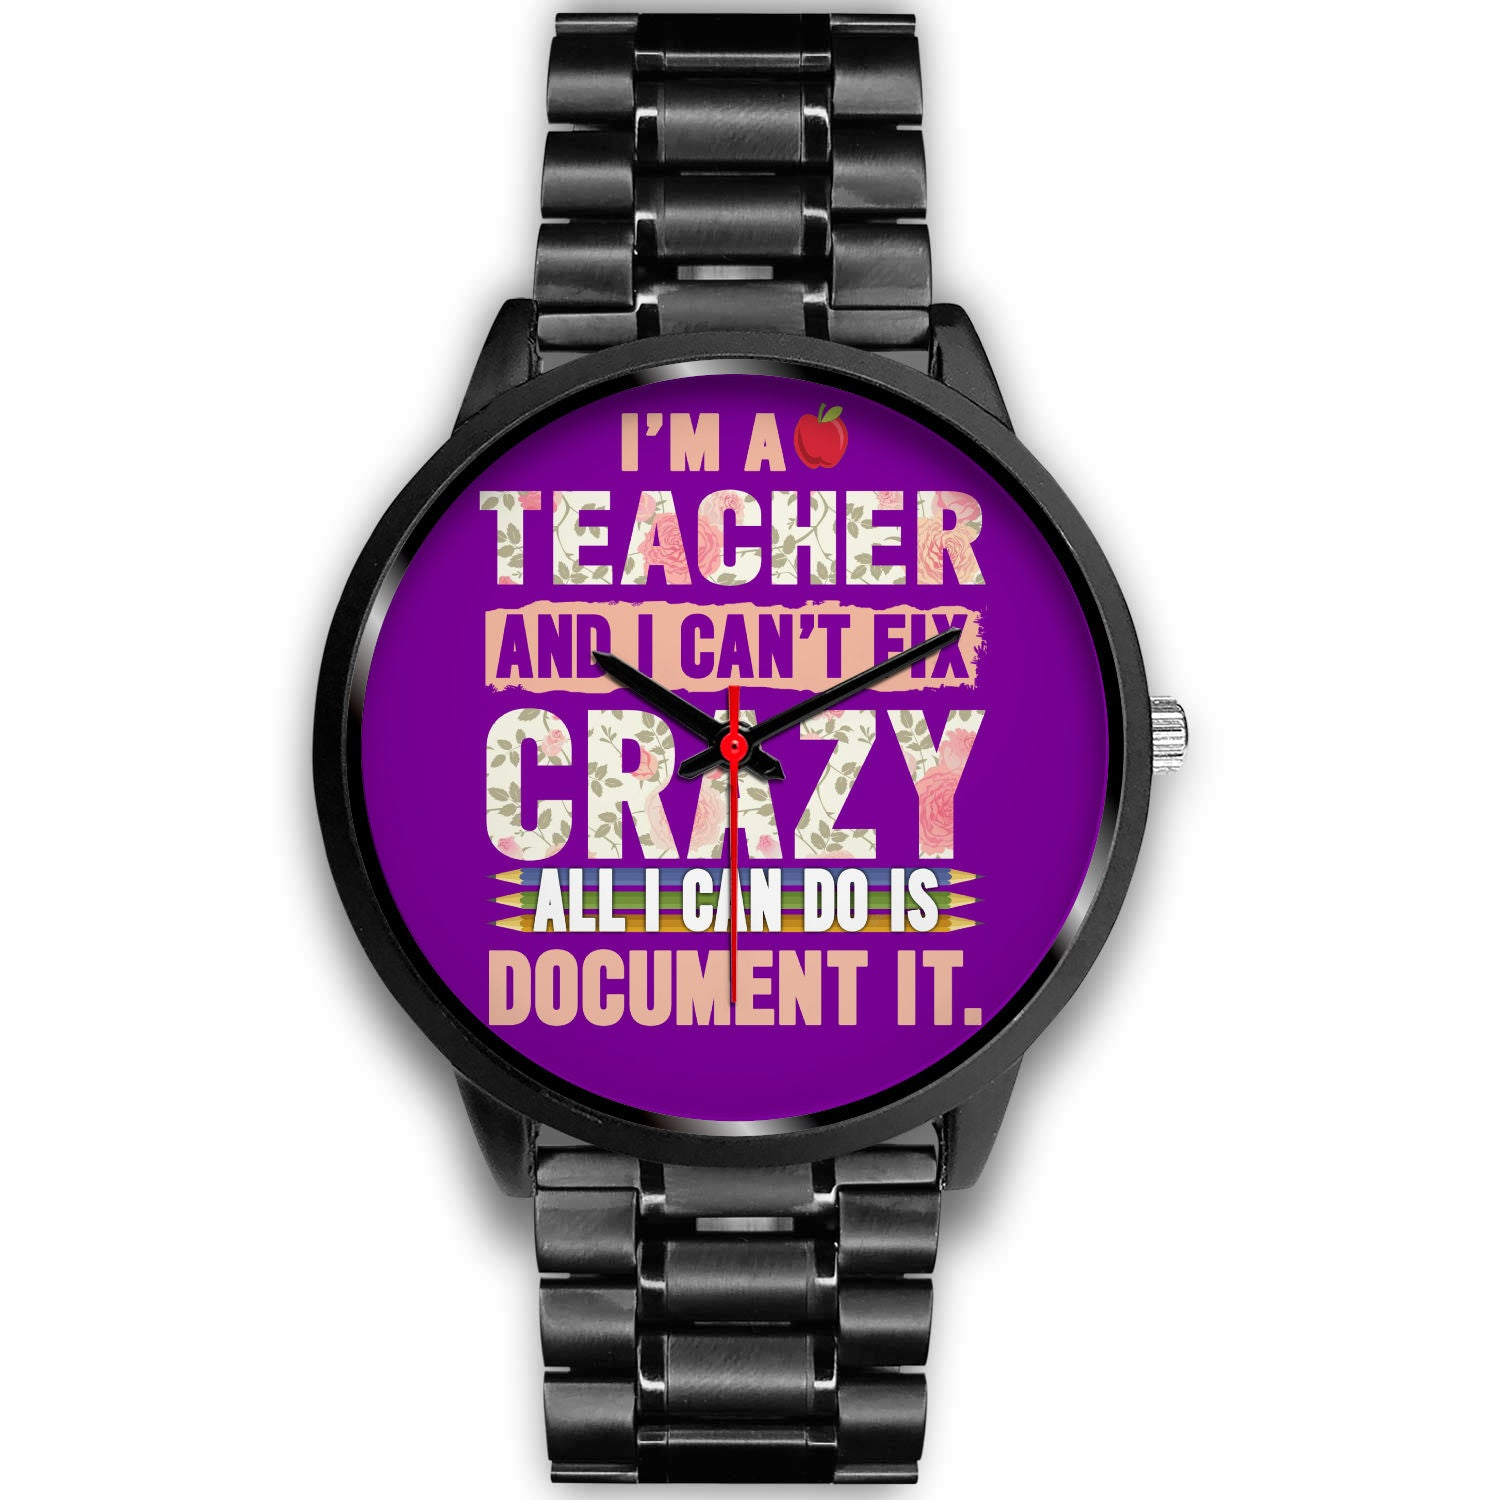 VIRA black stainless steel watch for awesome teachers